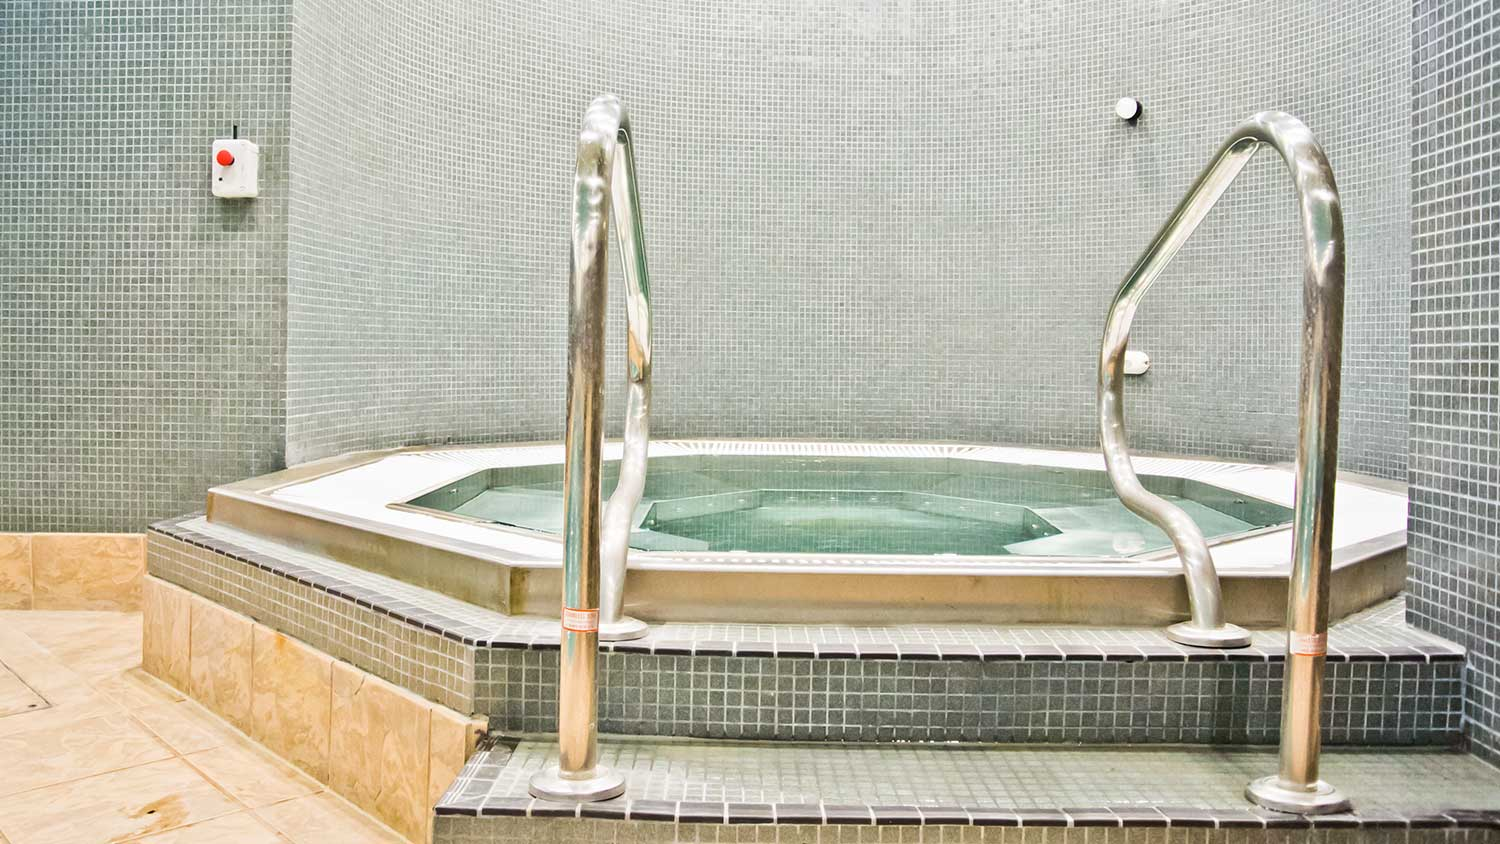 Jacuzzi Area at The Oxfordshire Health & Racquets Club